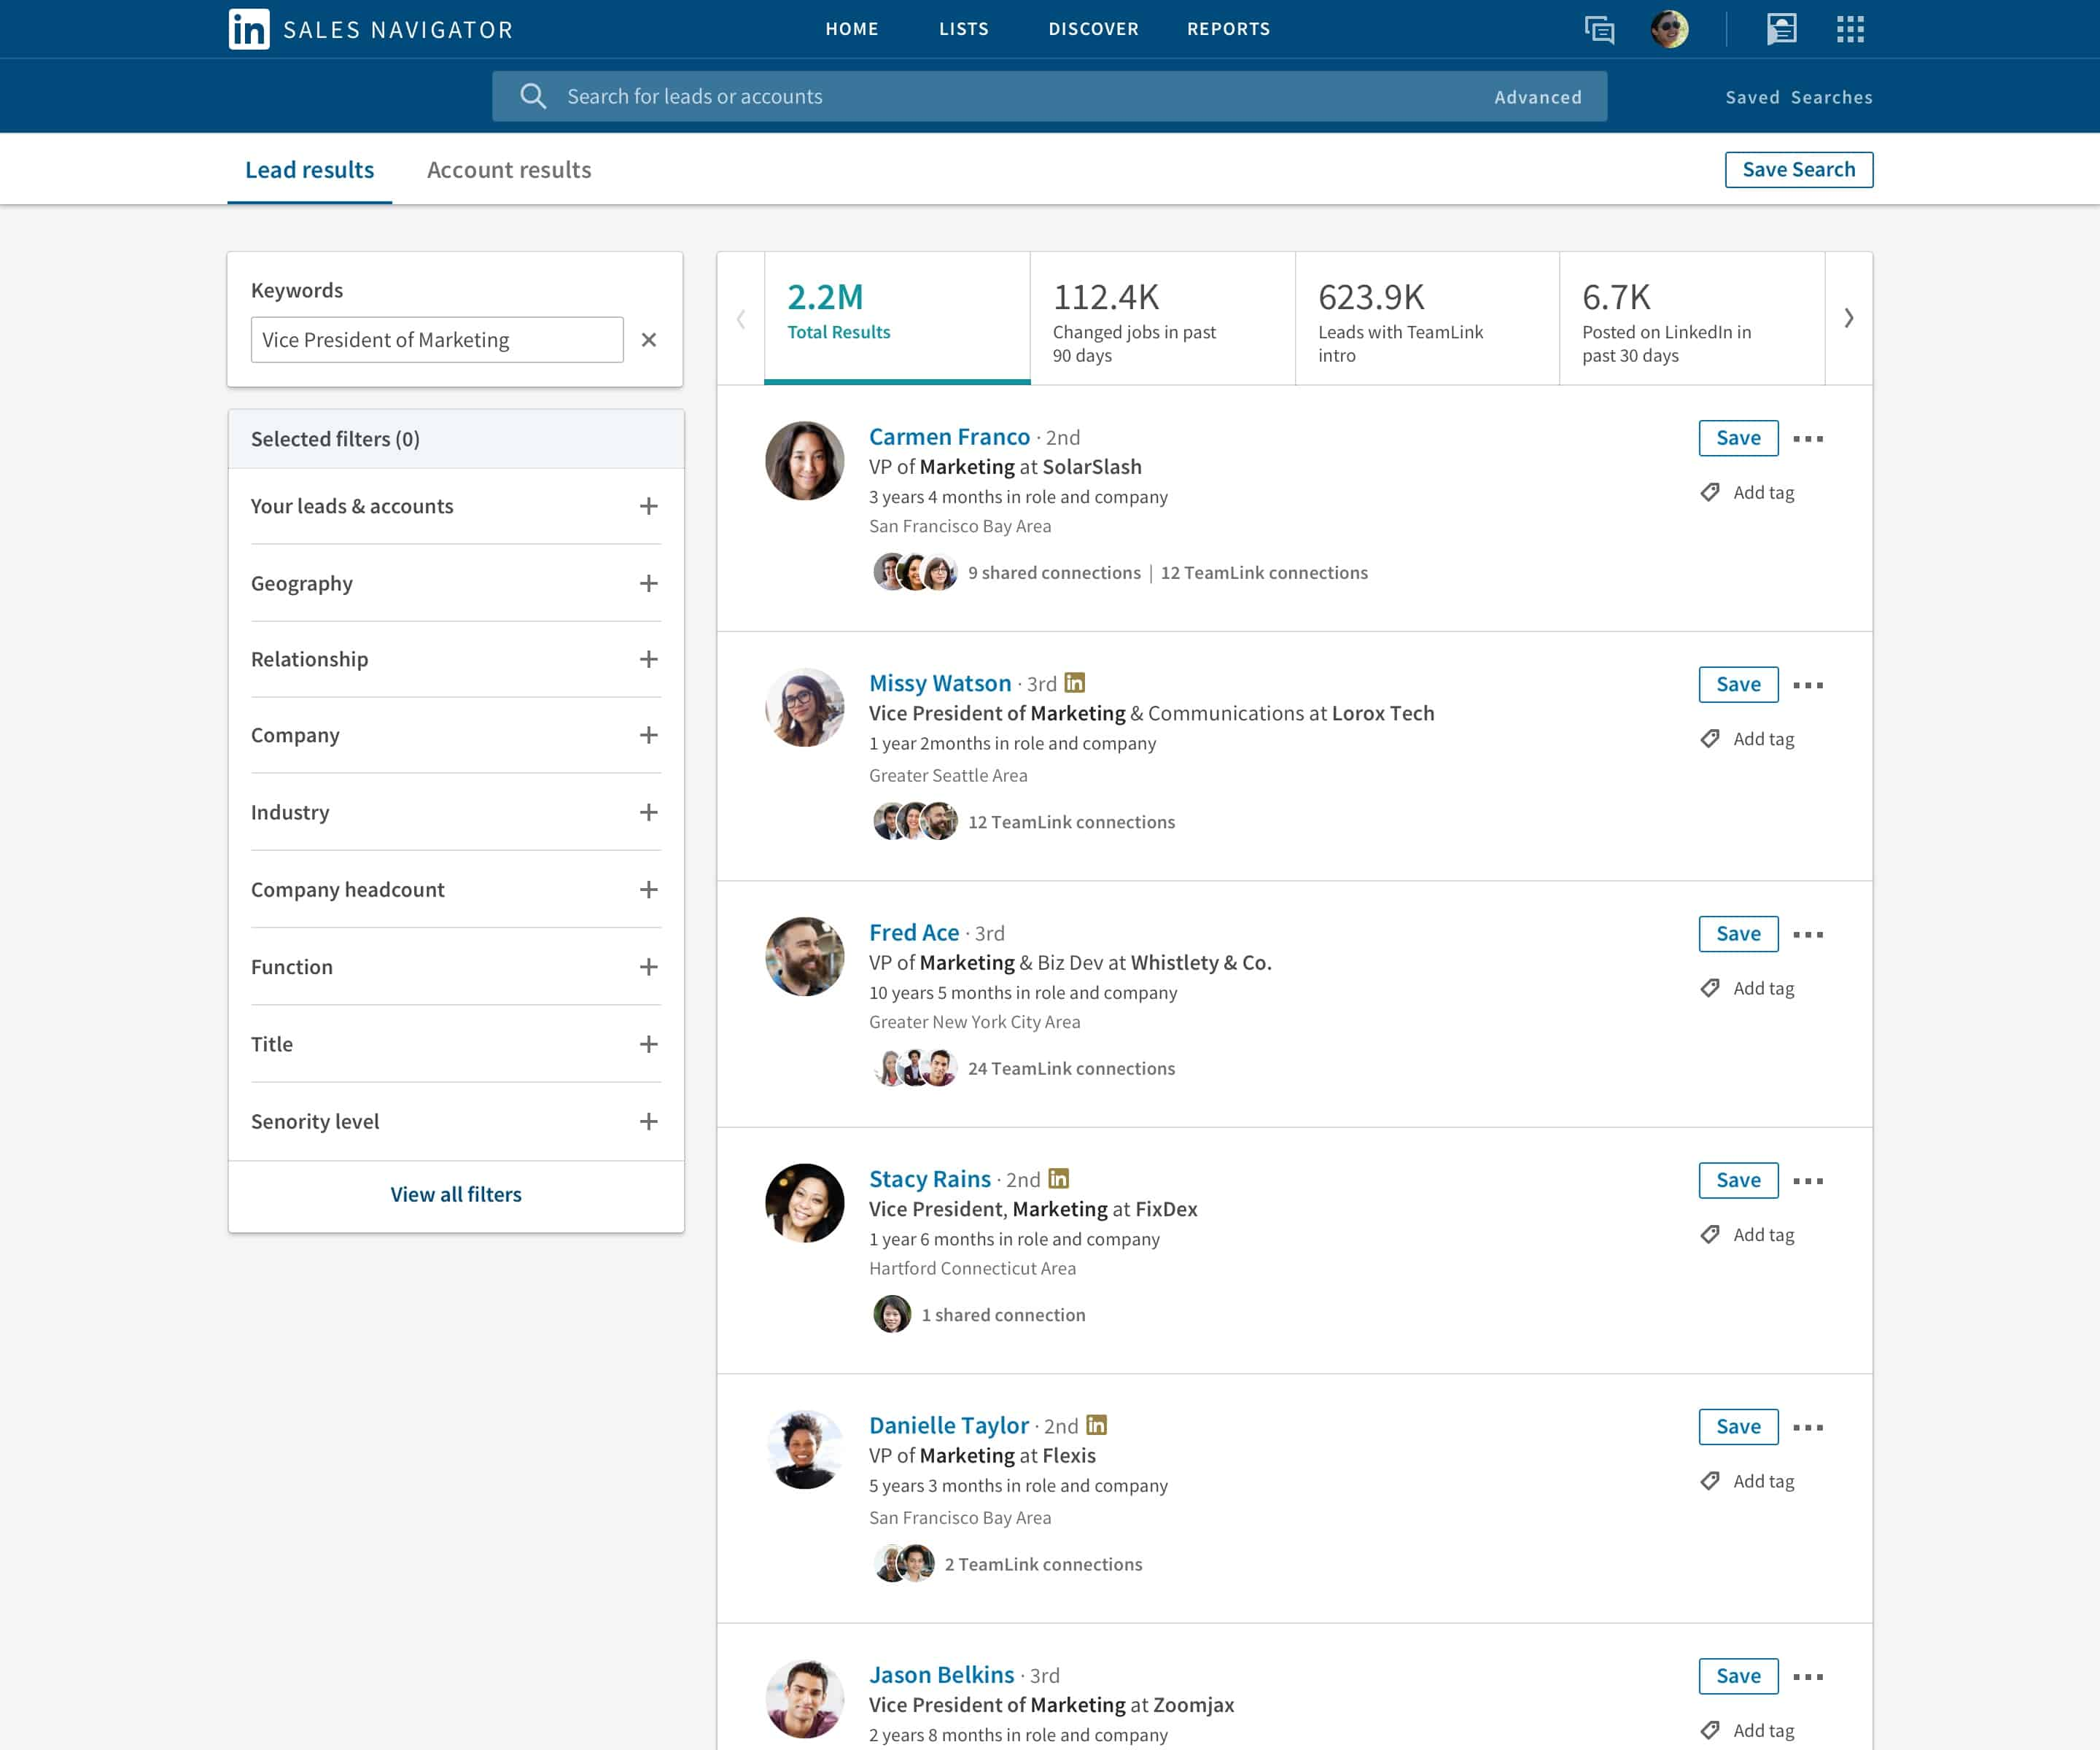 LinkedIn Added Several New Features to Its Sales Navigator